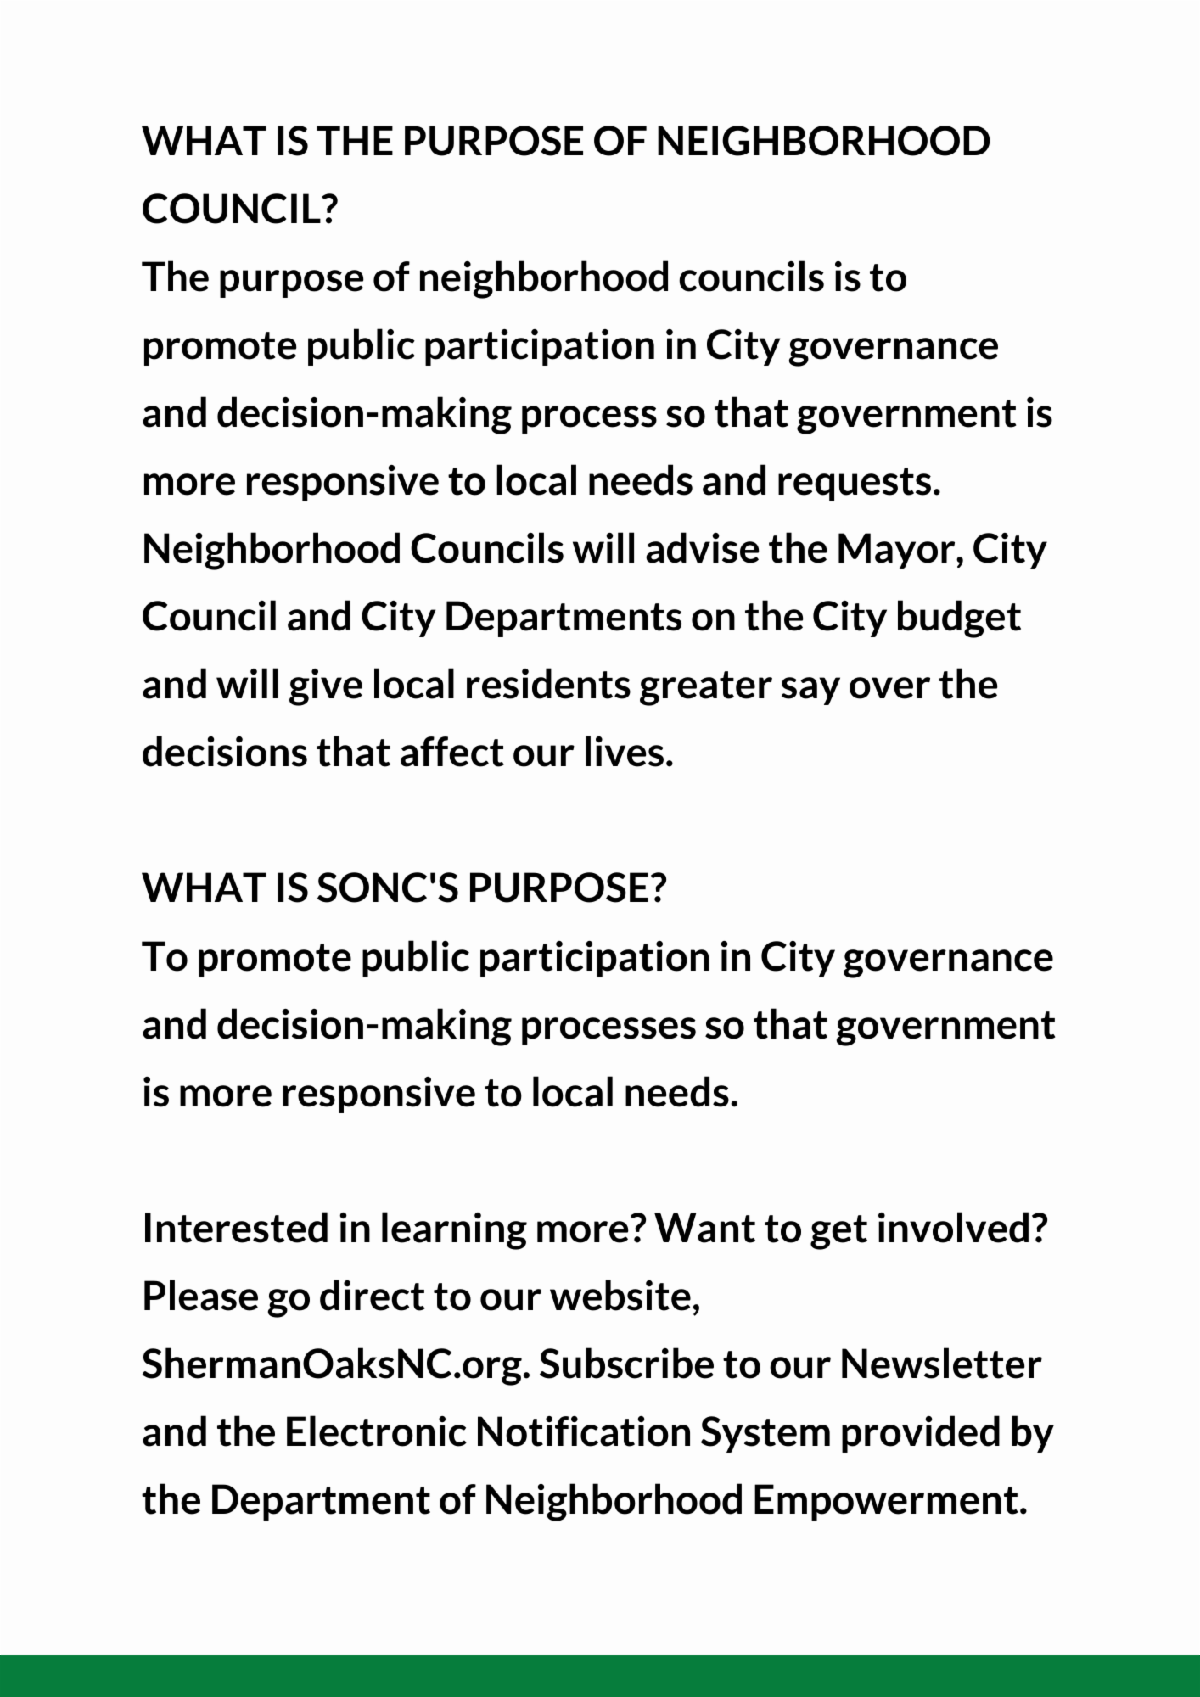 WHAT IS THE PURPOSE OF NEIGHBORHOOD COUNCIL The purpose of neighborhood councils is to promote public participation in City governance and decision making process so that governmentis more responsive to local needs and requests.